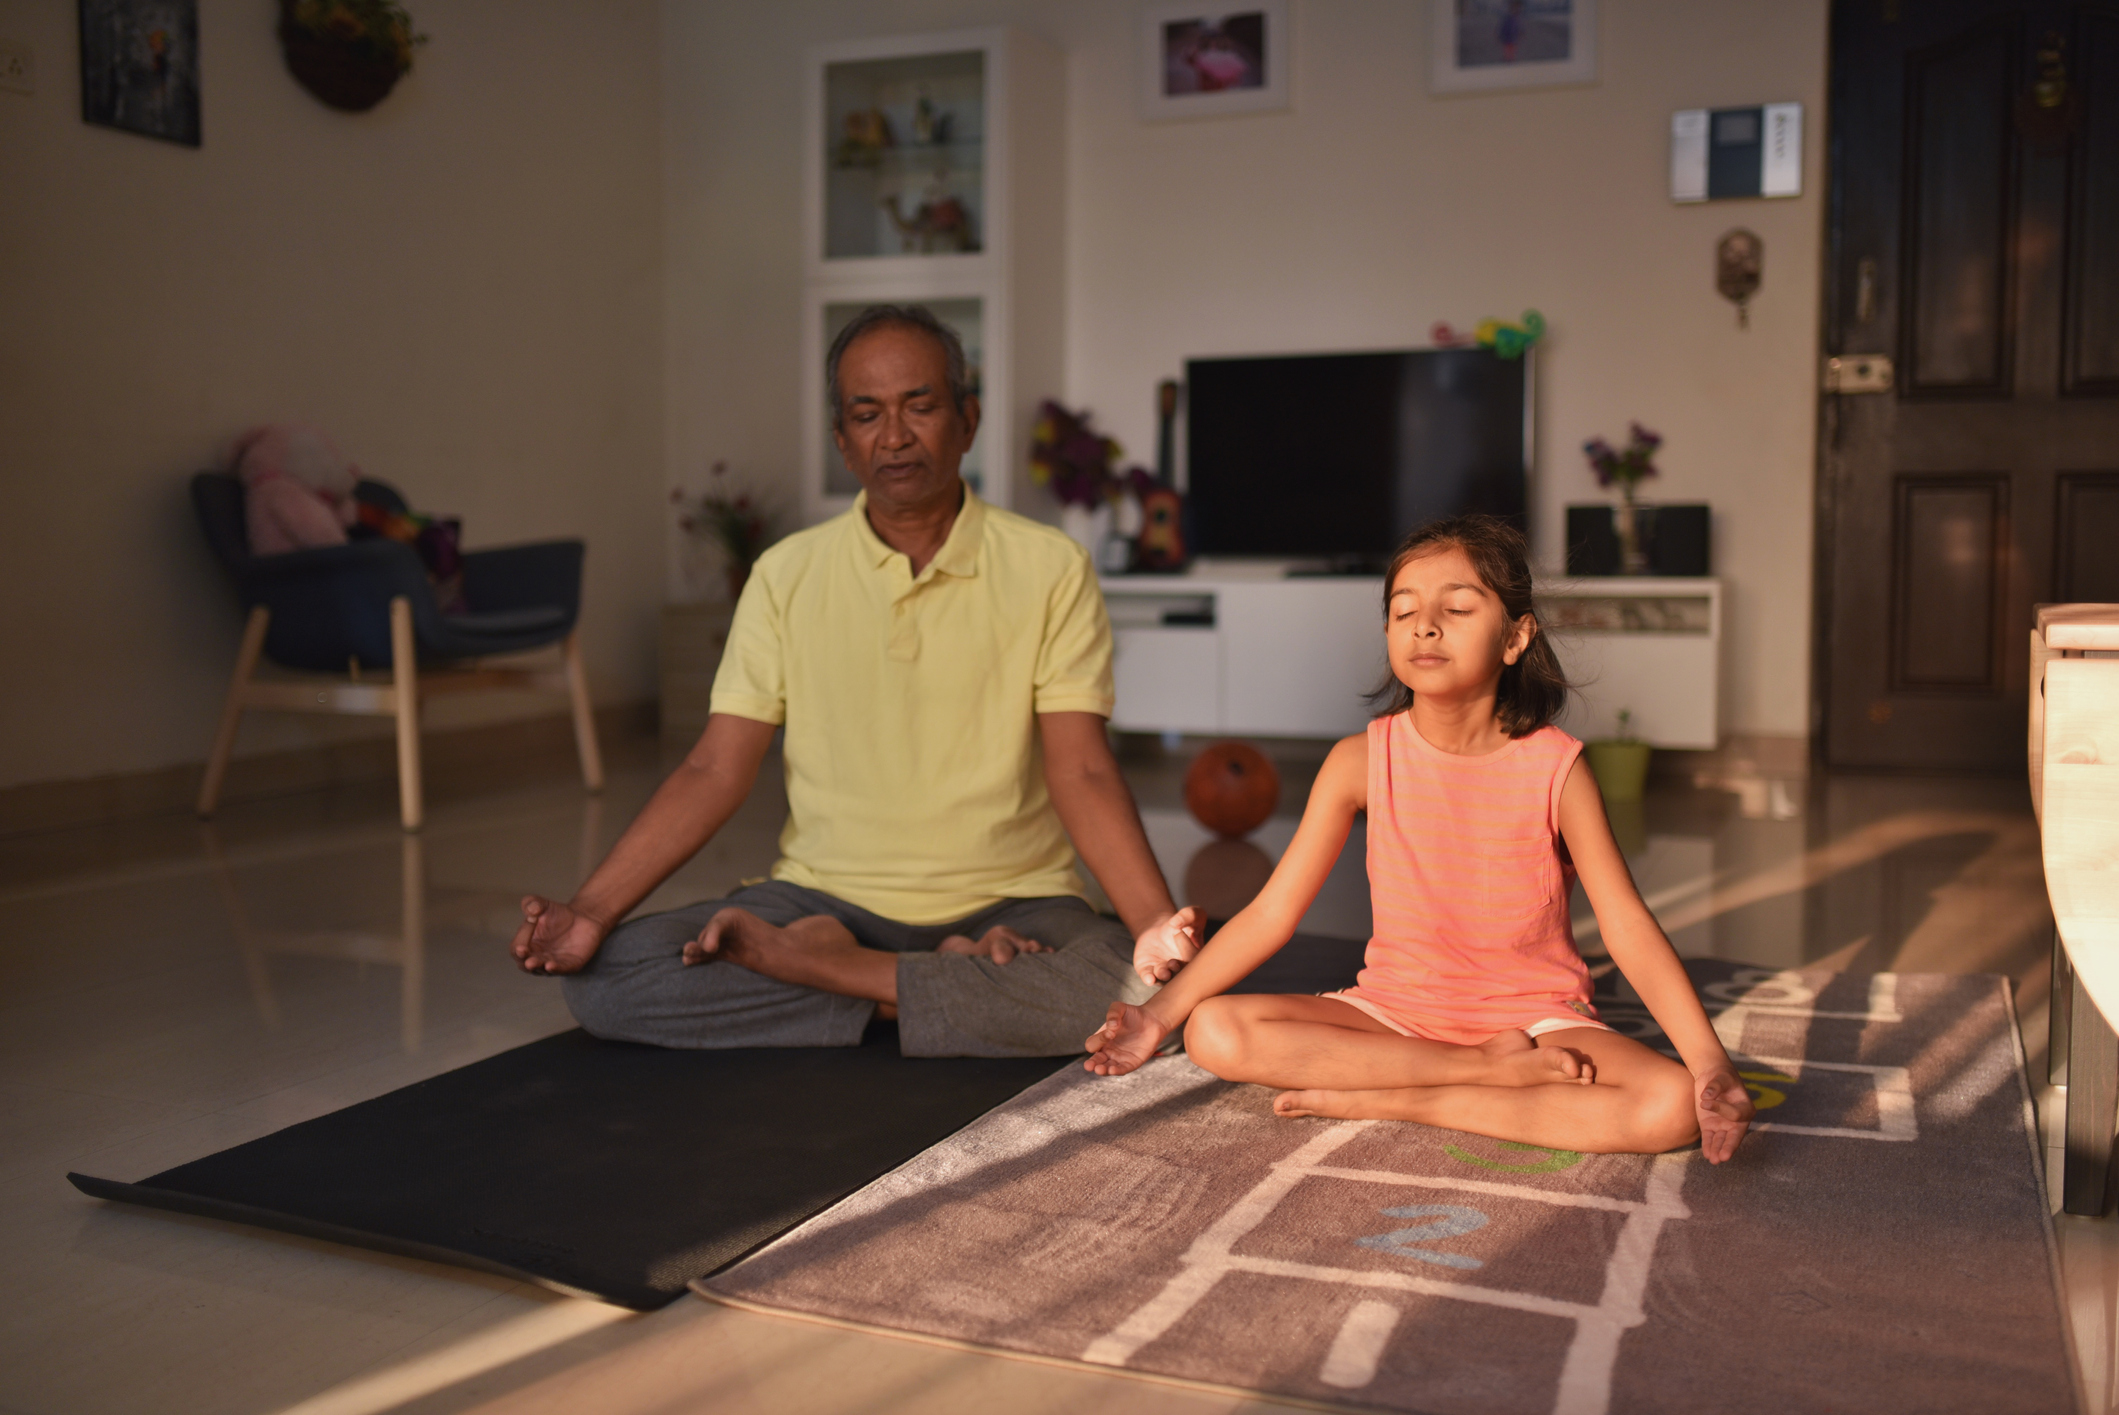 3 Tips To Practice Family Mindfulness at Home